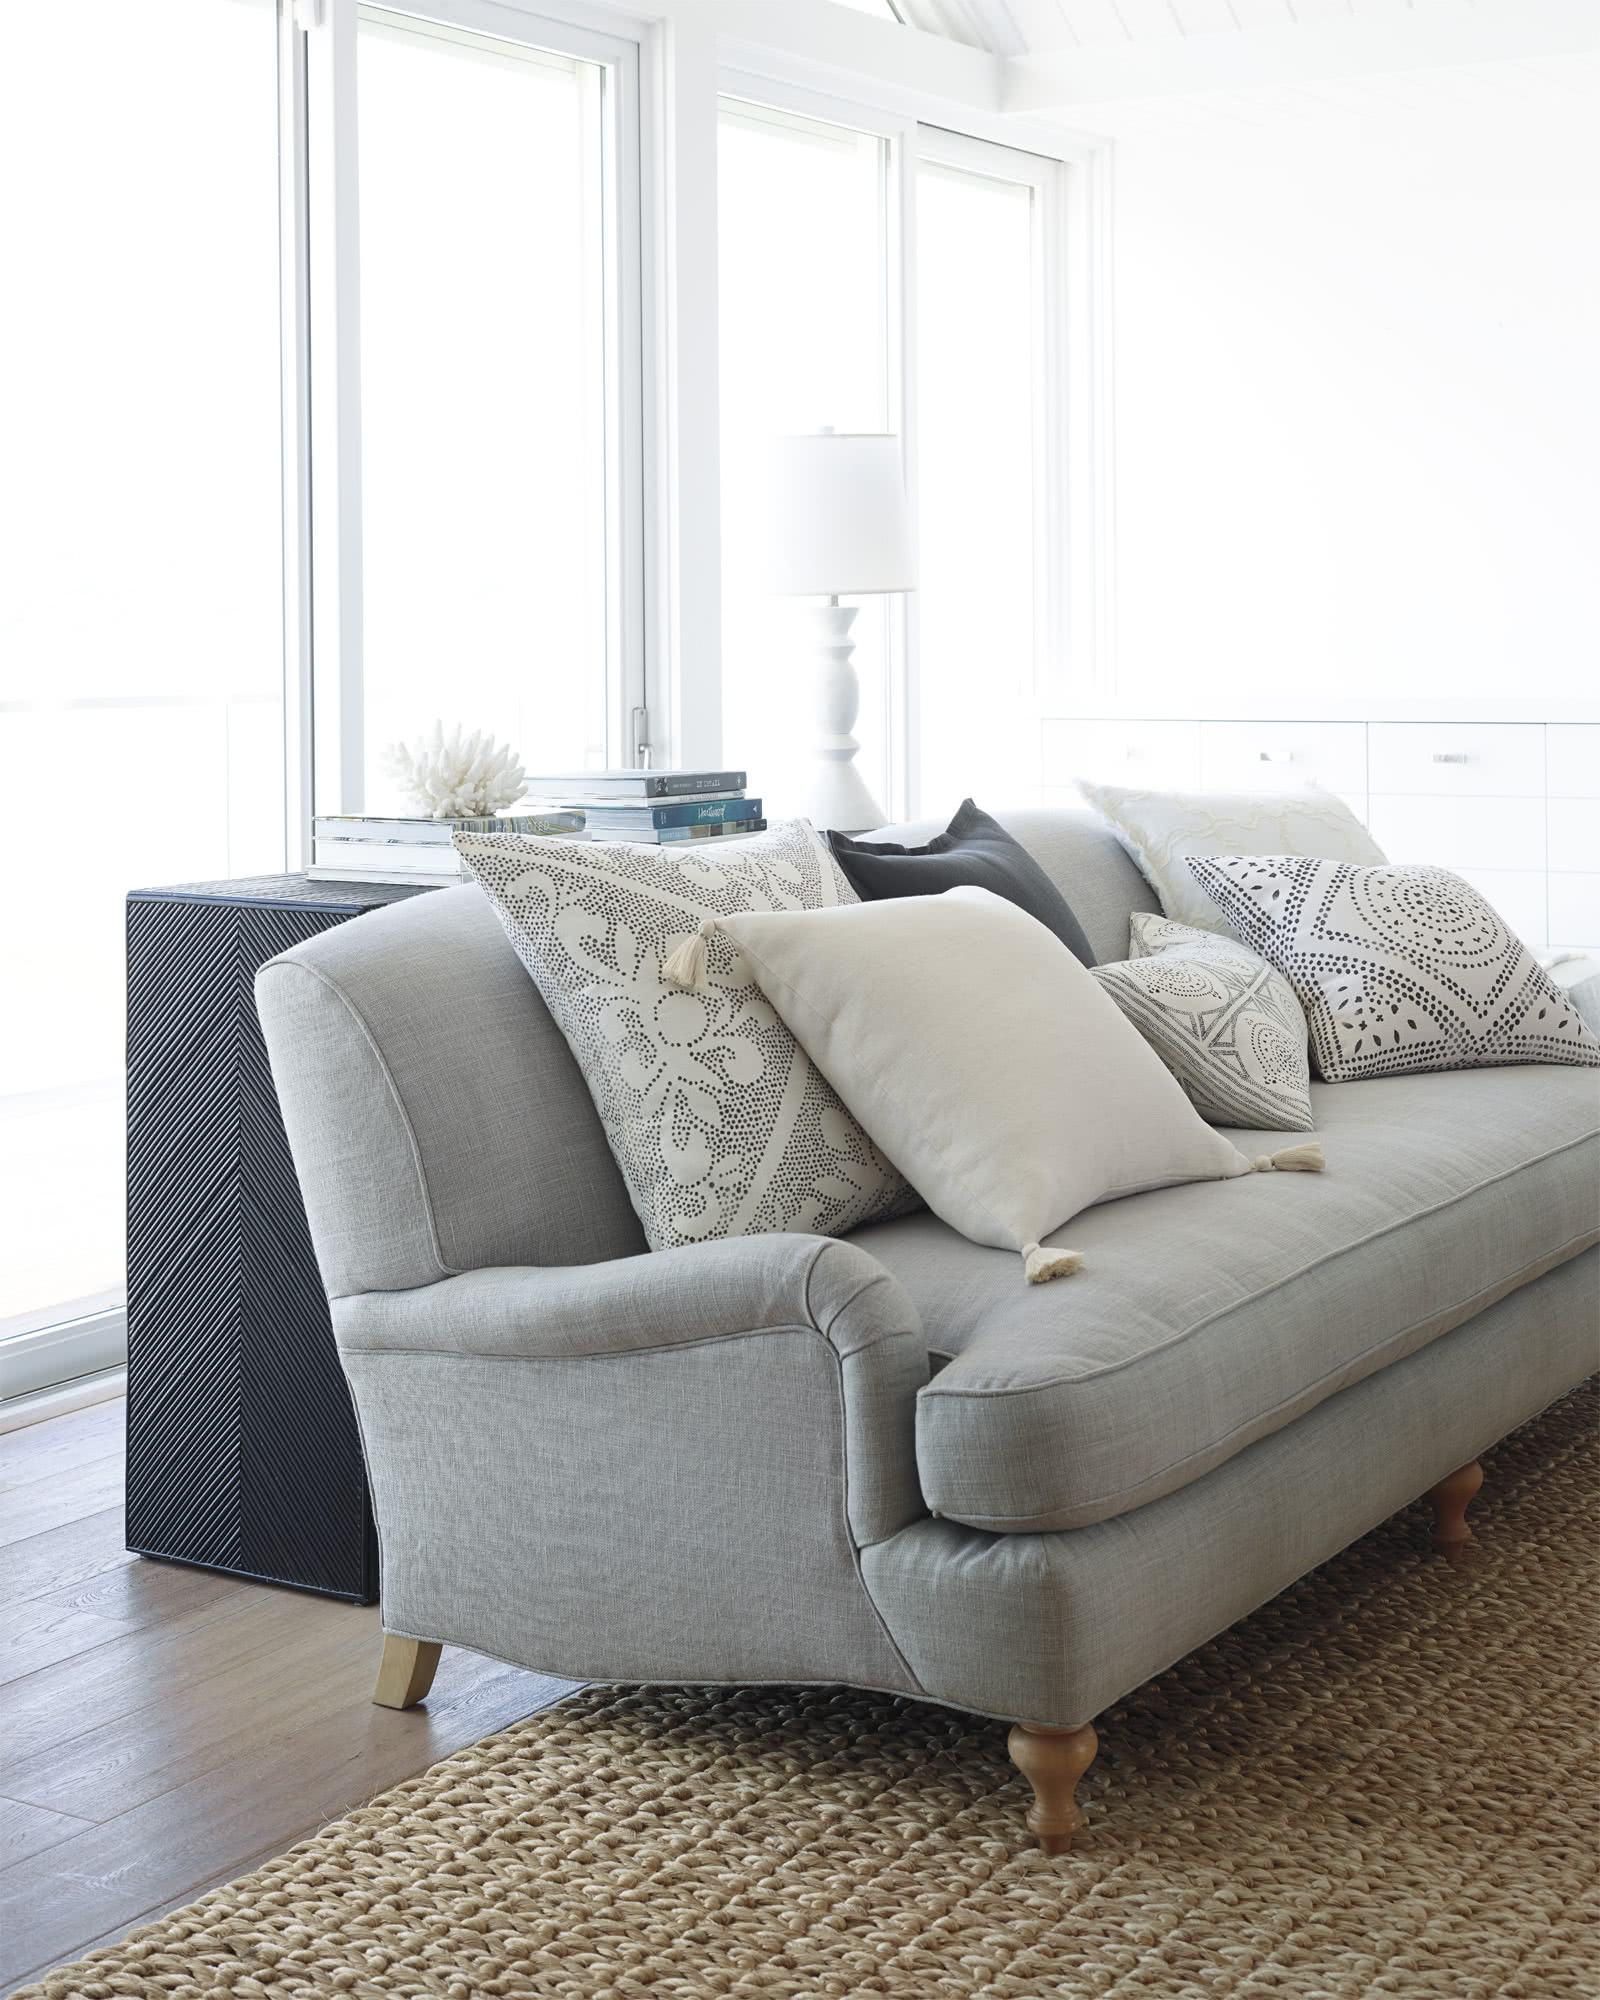 Lily Sofa Lily Sofa 1273 By Younger Furniture Thesofa